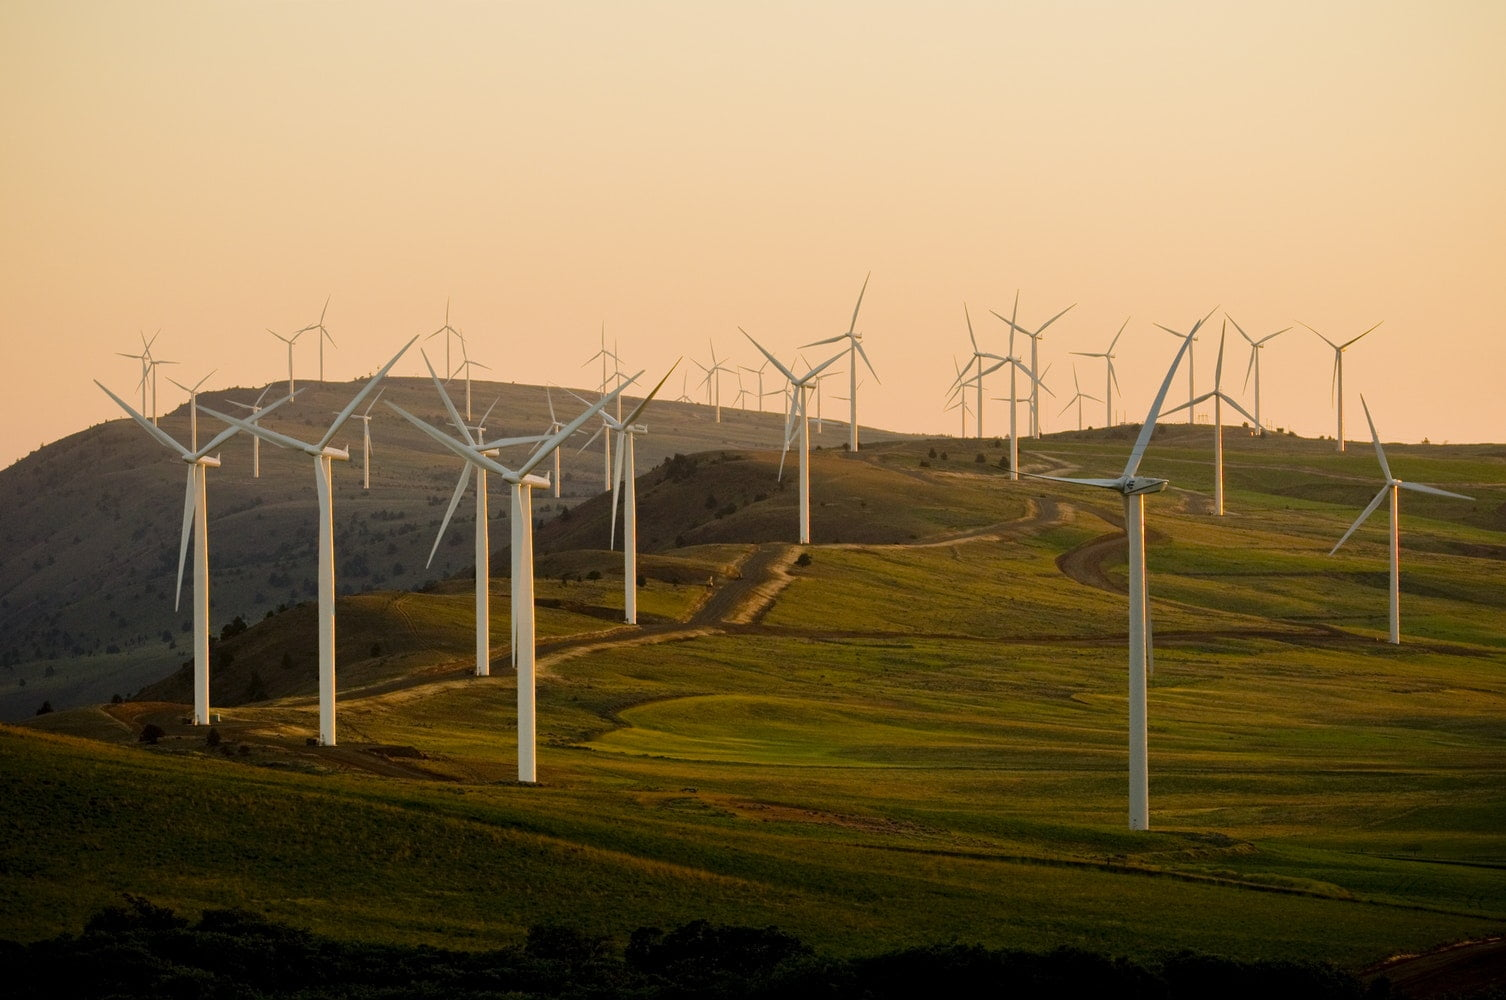 A community owned windfarm in England generating community energy as used by Co-op Energy